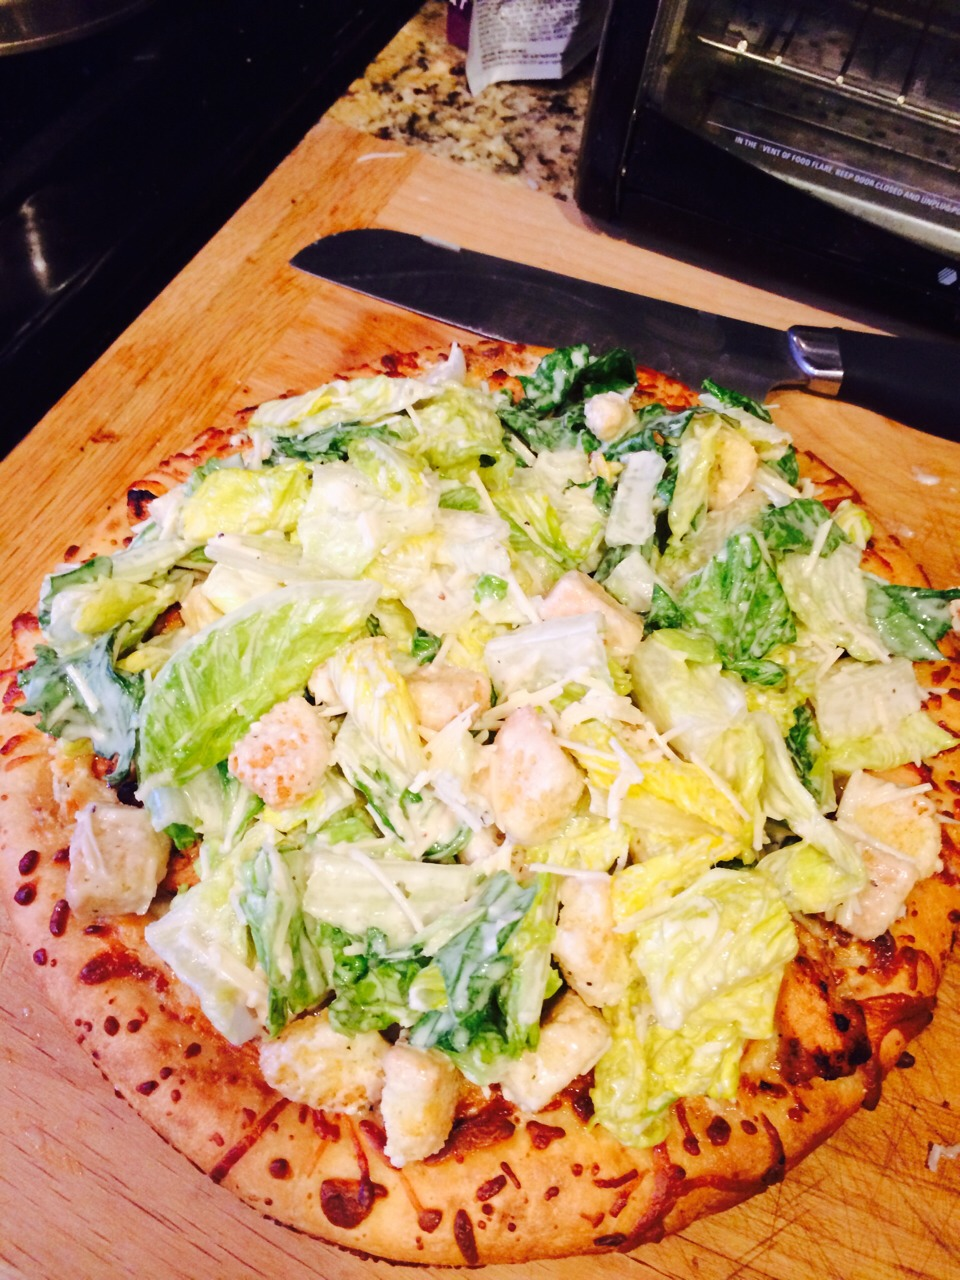 Put your salad on top of your pizza, cute it up and ENJOY!!!